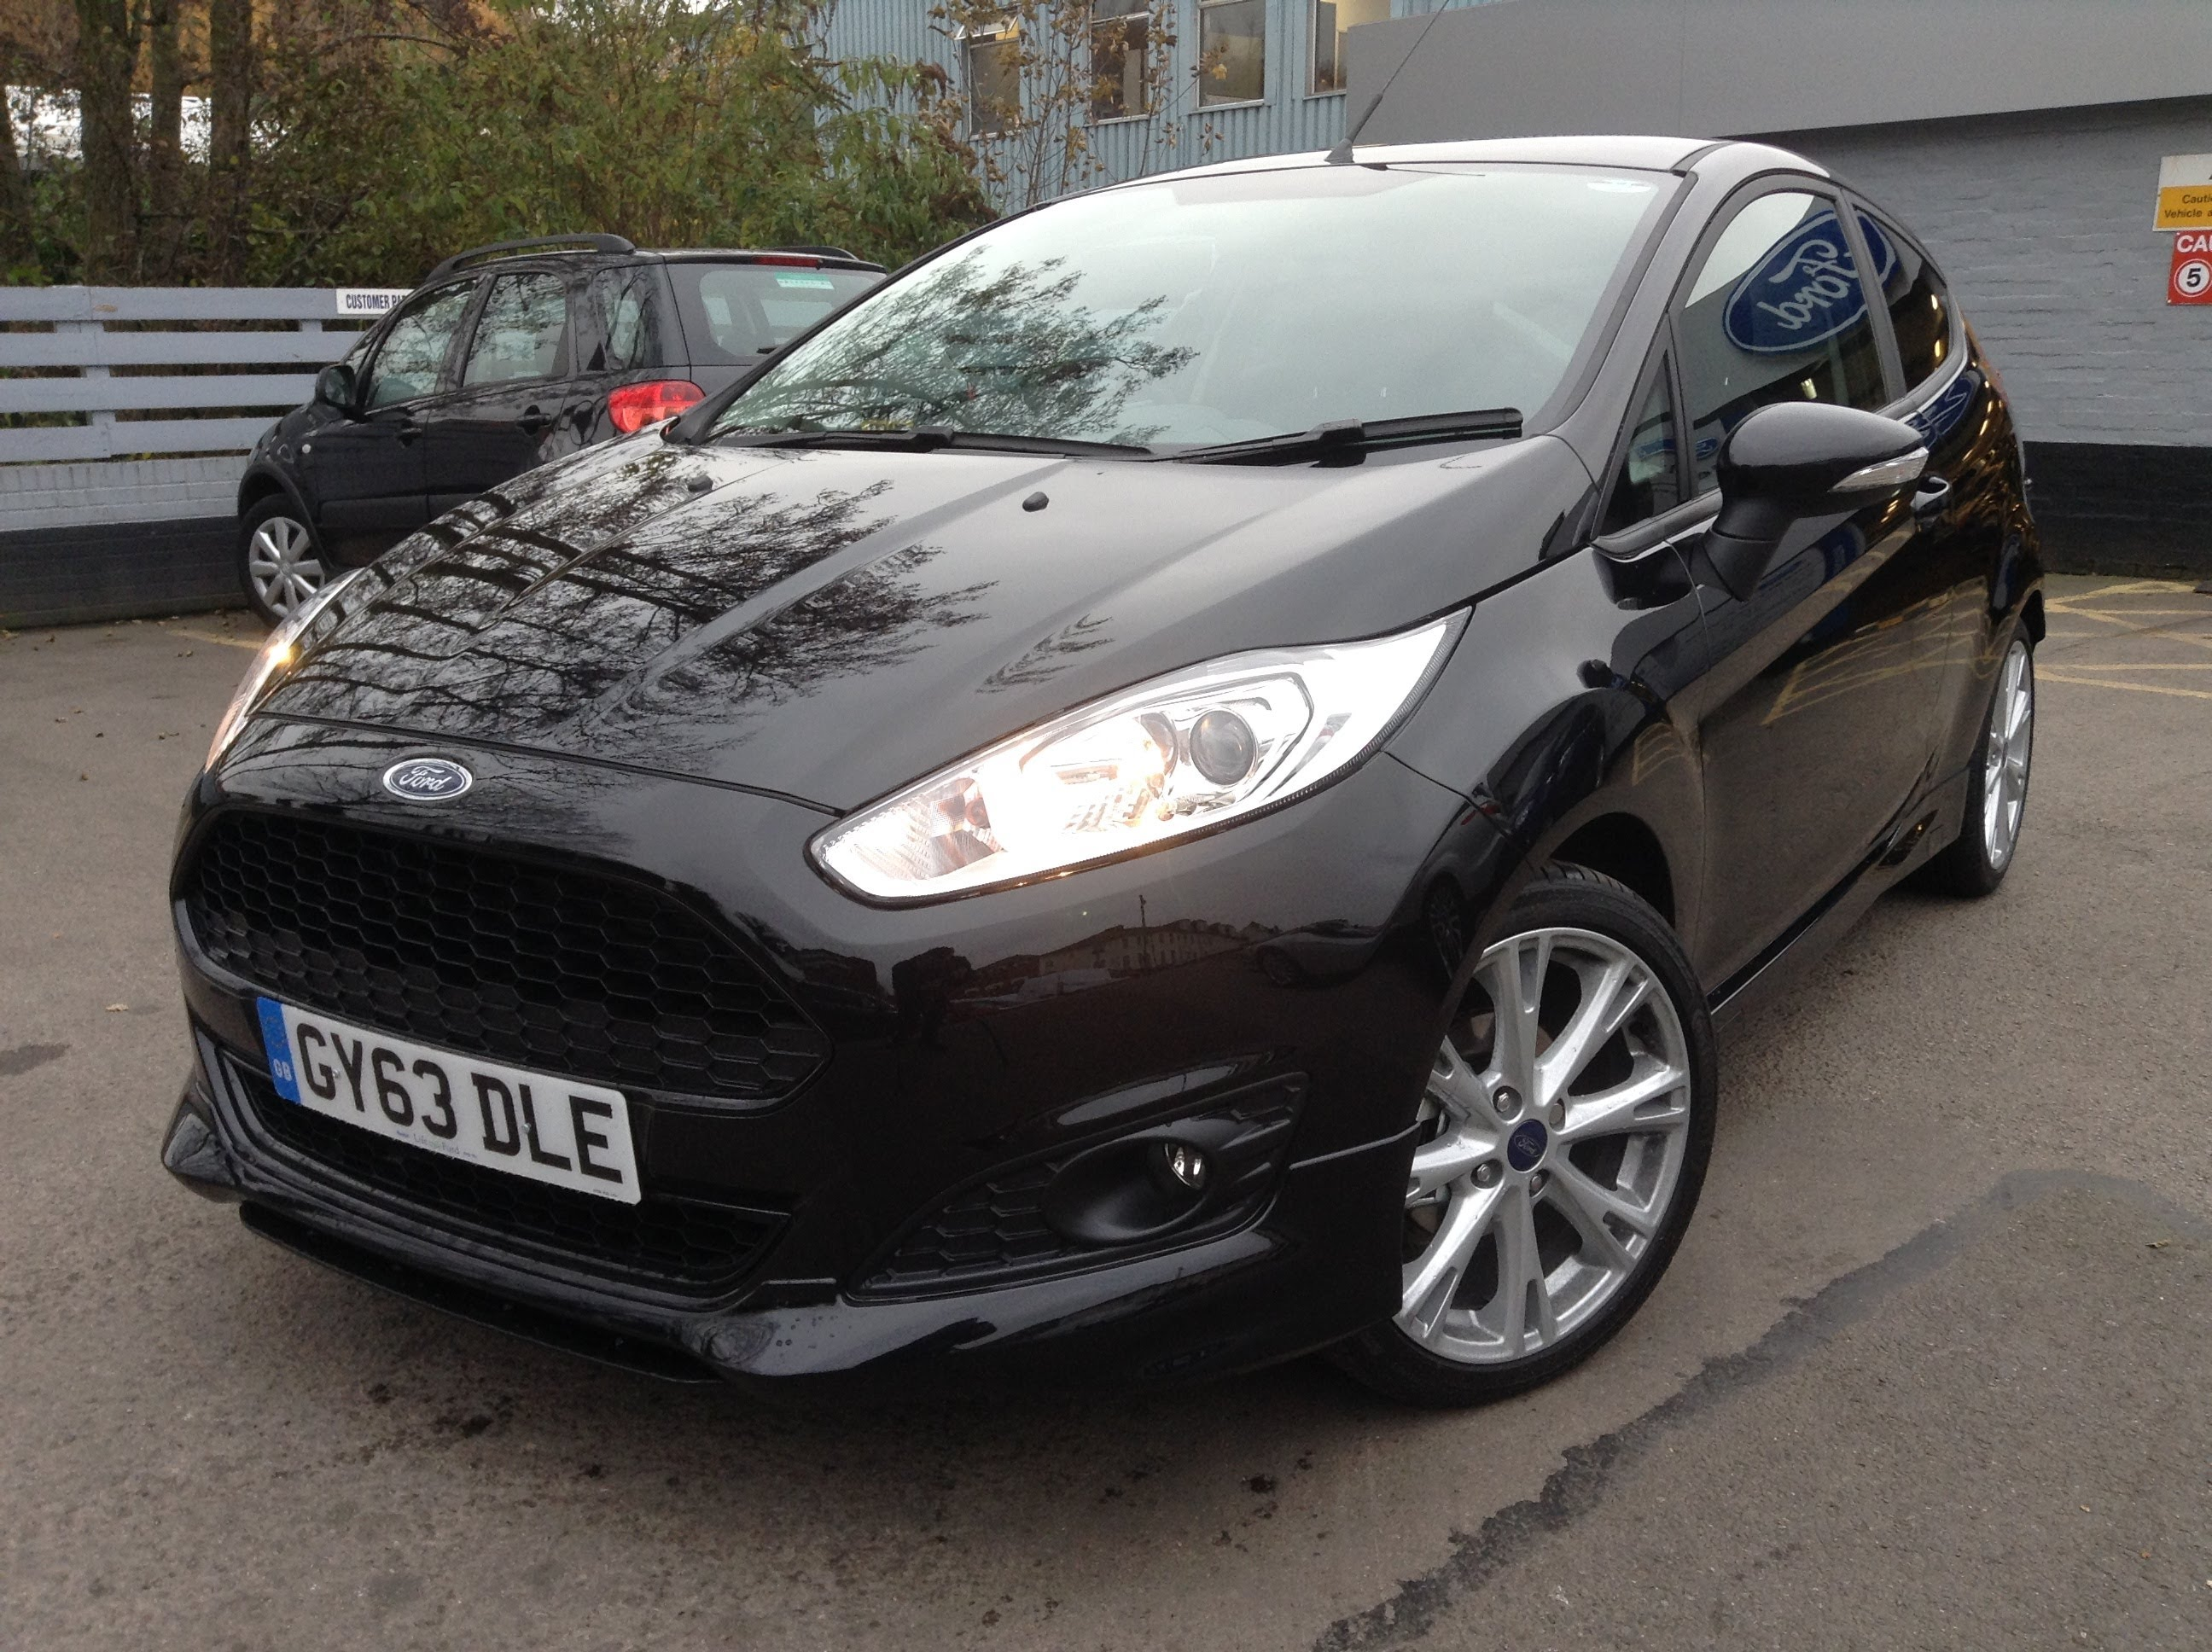 Ford Fiesta 1.6TDCi 2013 photo - 12